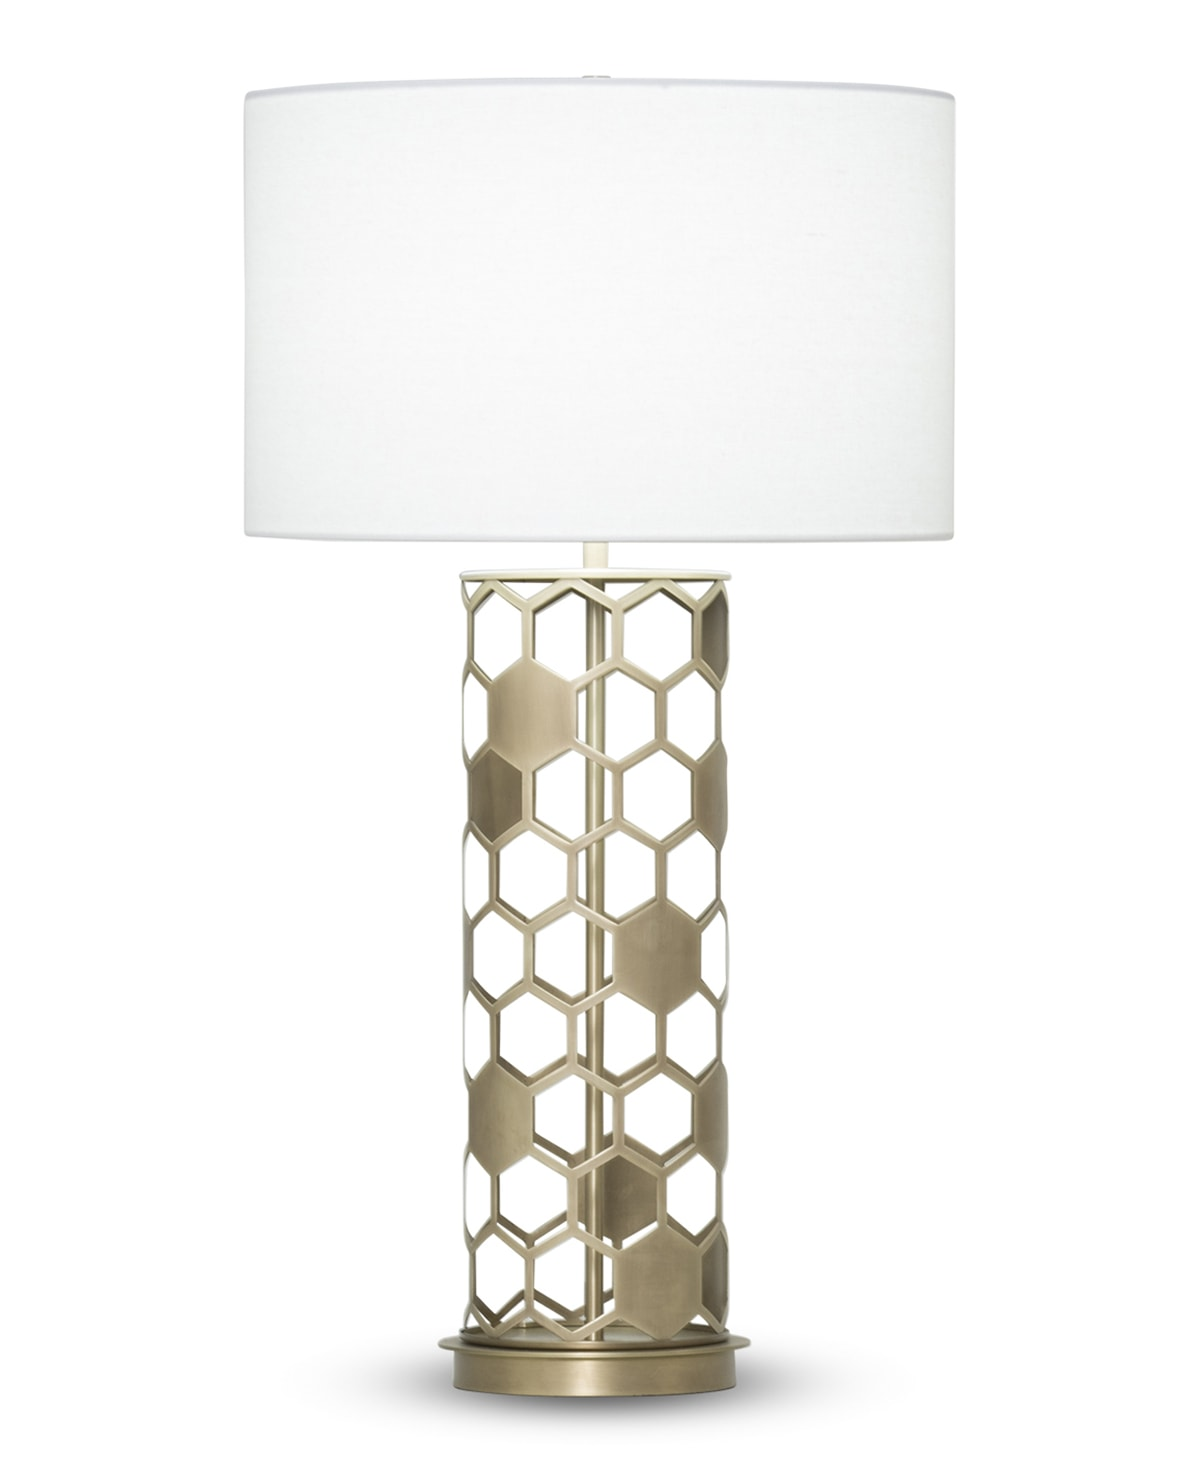 FlowDecor Scarlett Table Lamp in metal with antique brass finish and off-white linen drum shade (# 3914)